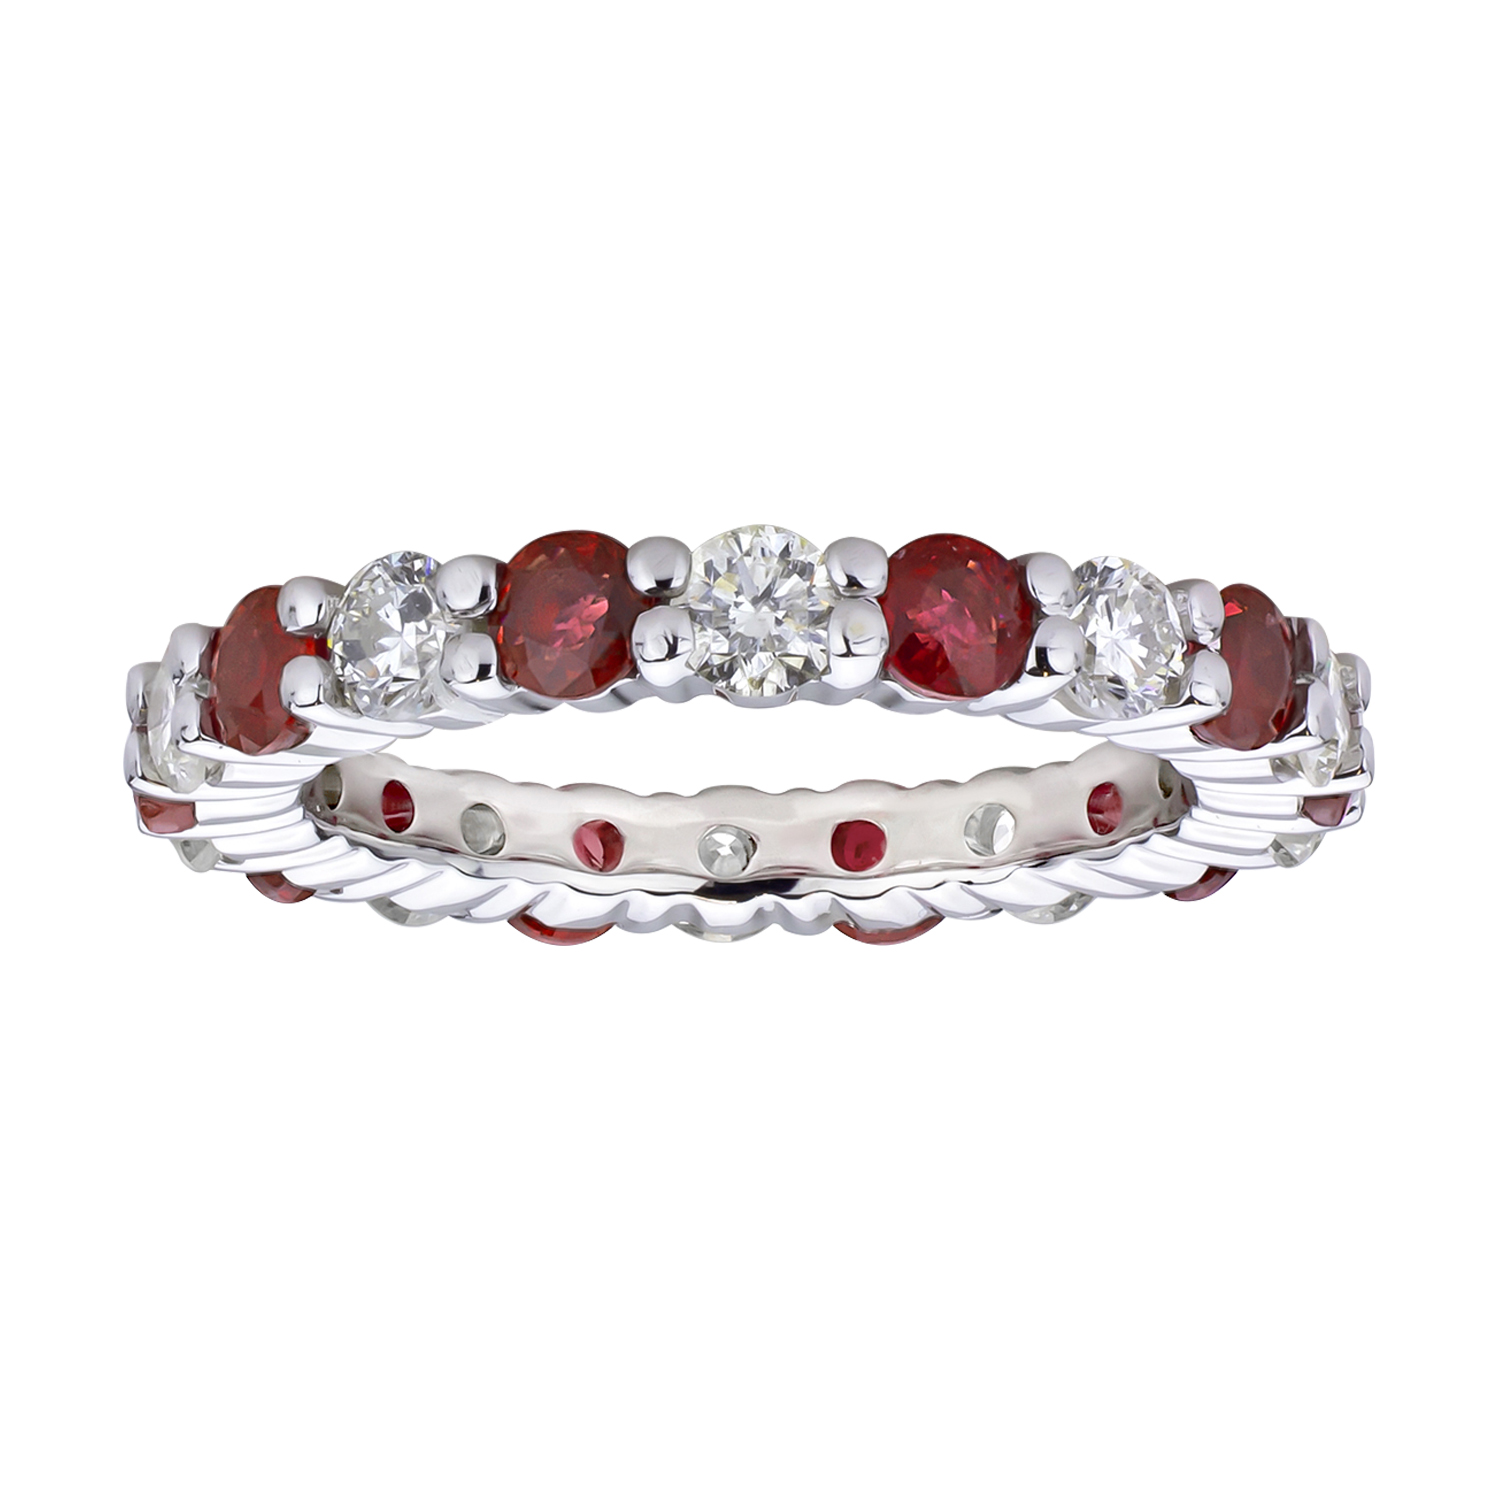 View 2.20cttw Diamond and Natural Heated Ruby Eternity Band set in 14k Gold